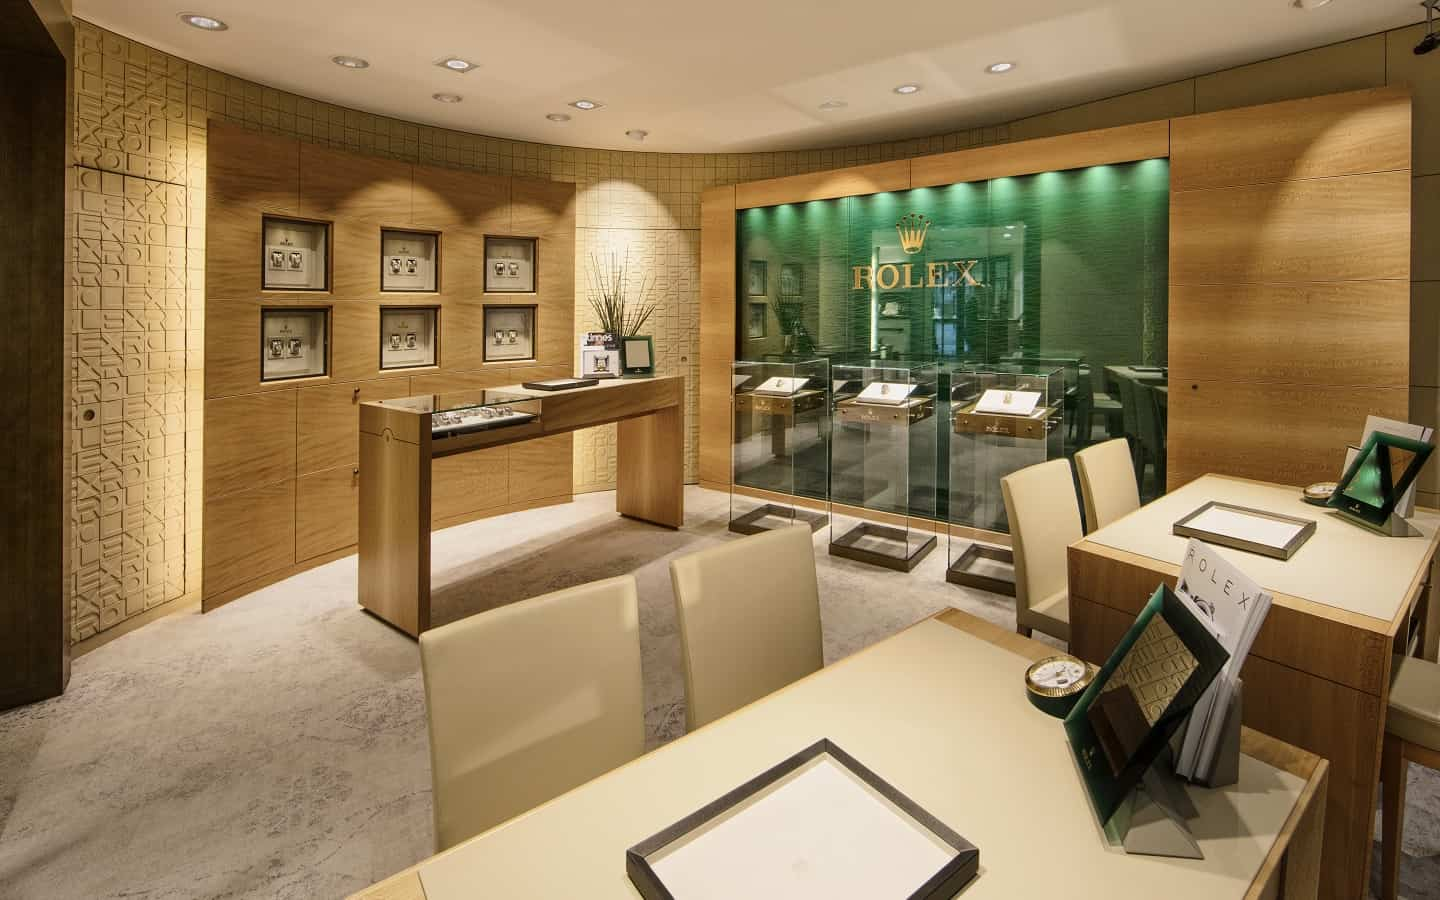 Unser Rolex Showroom